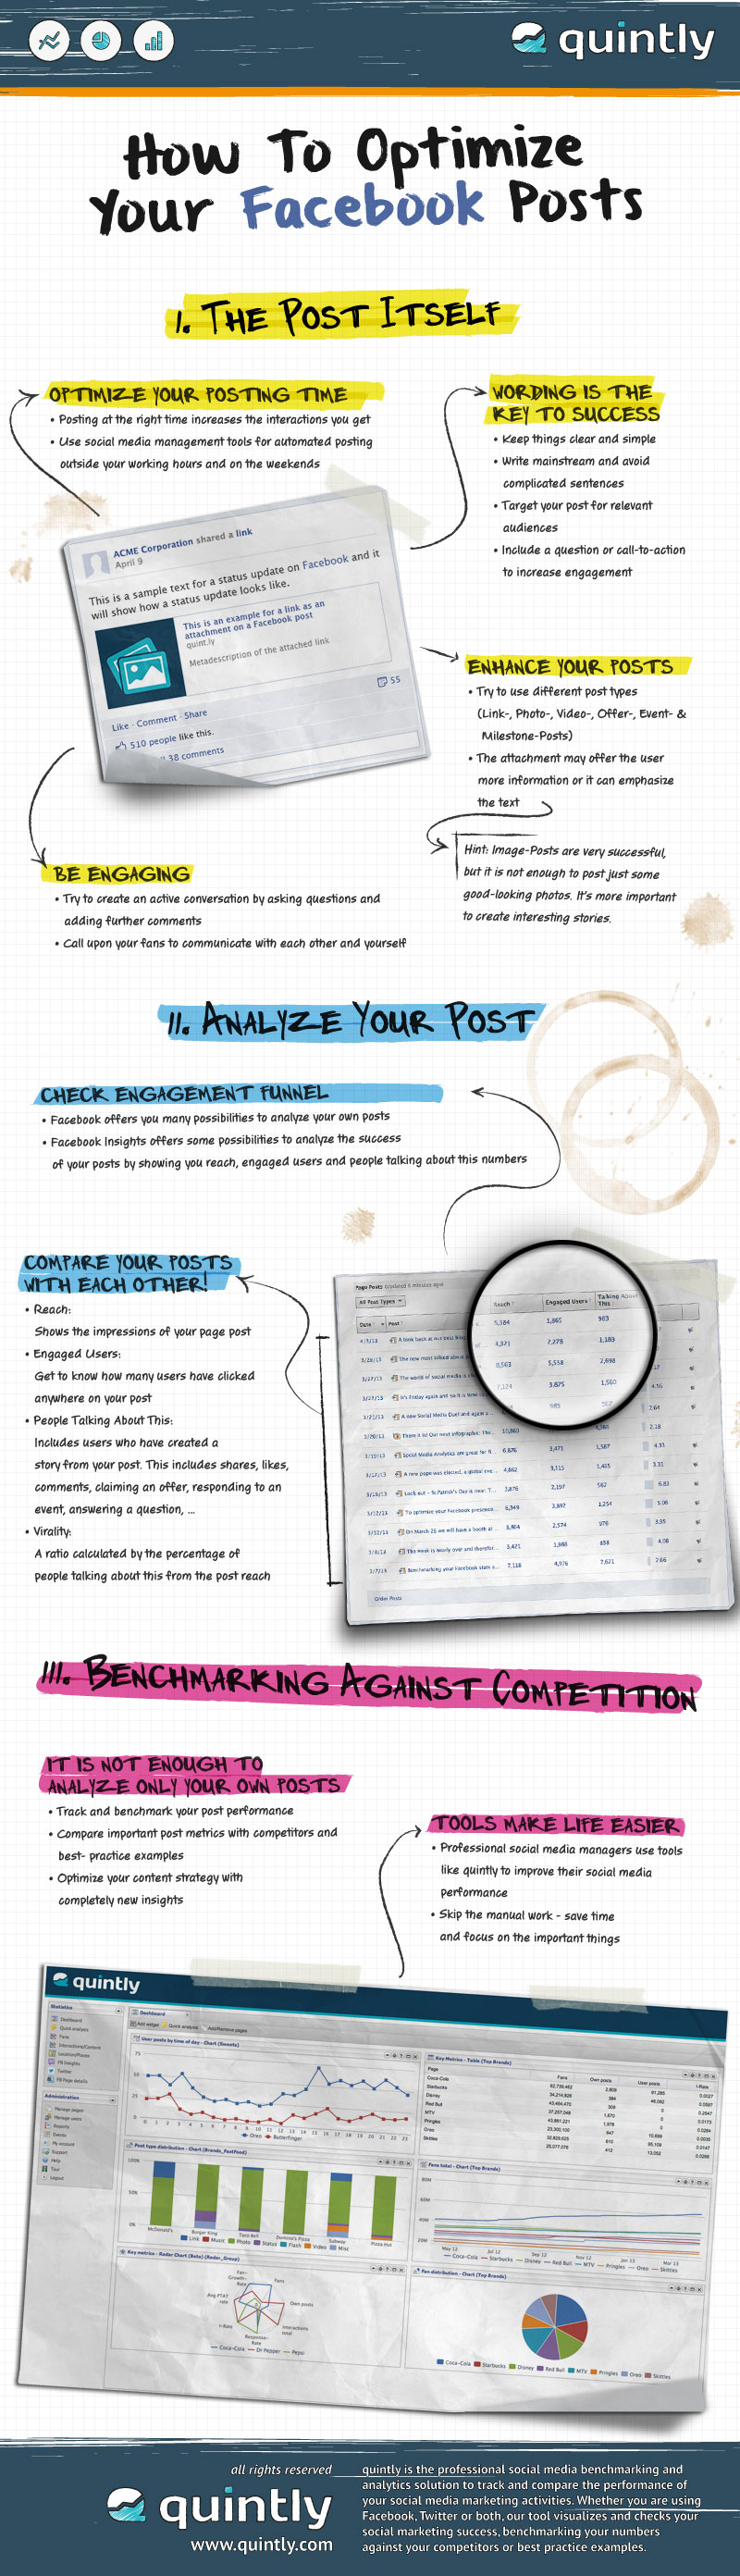 A Simple Guide For Optimizing Your Facebook Posts [Infographic]